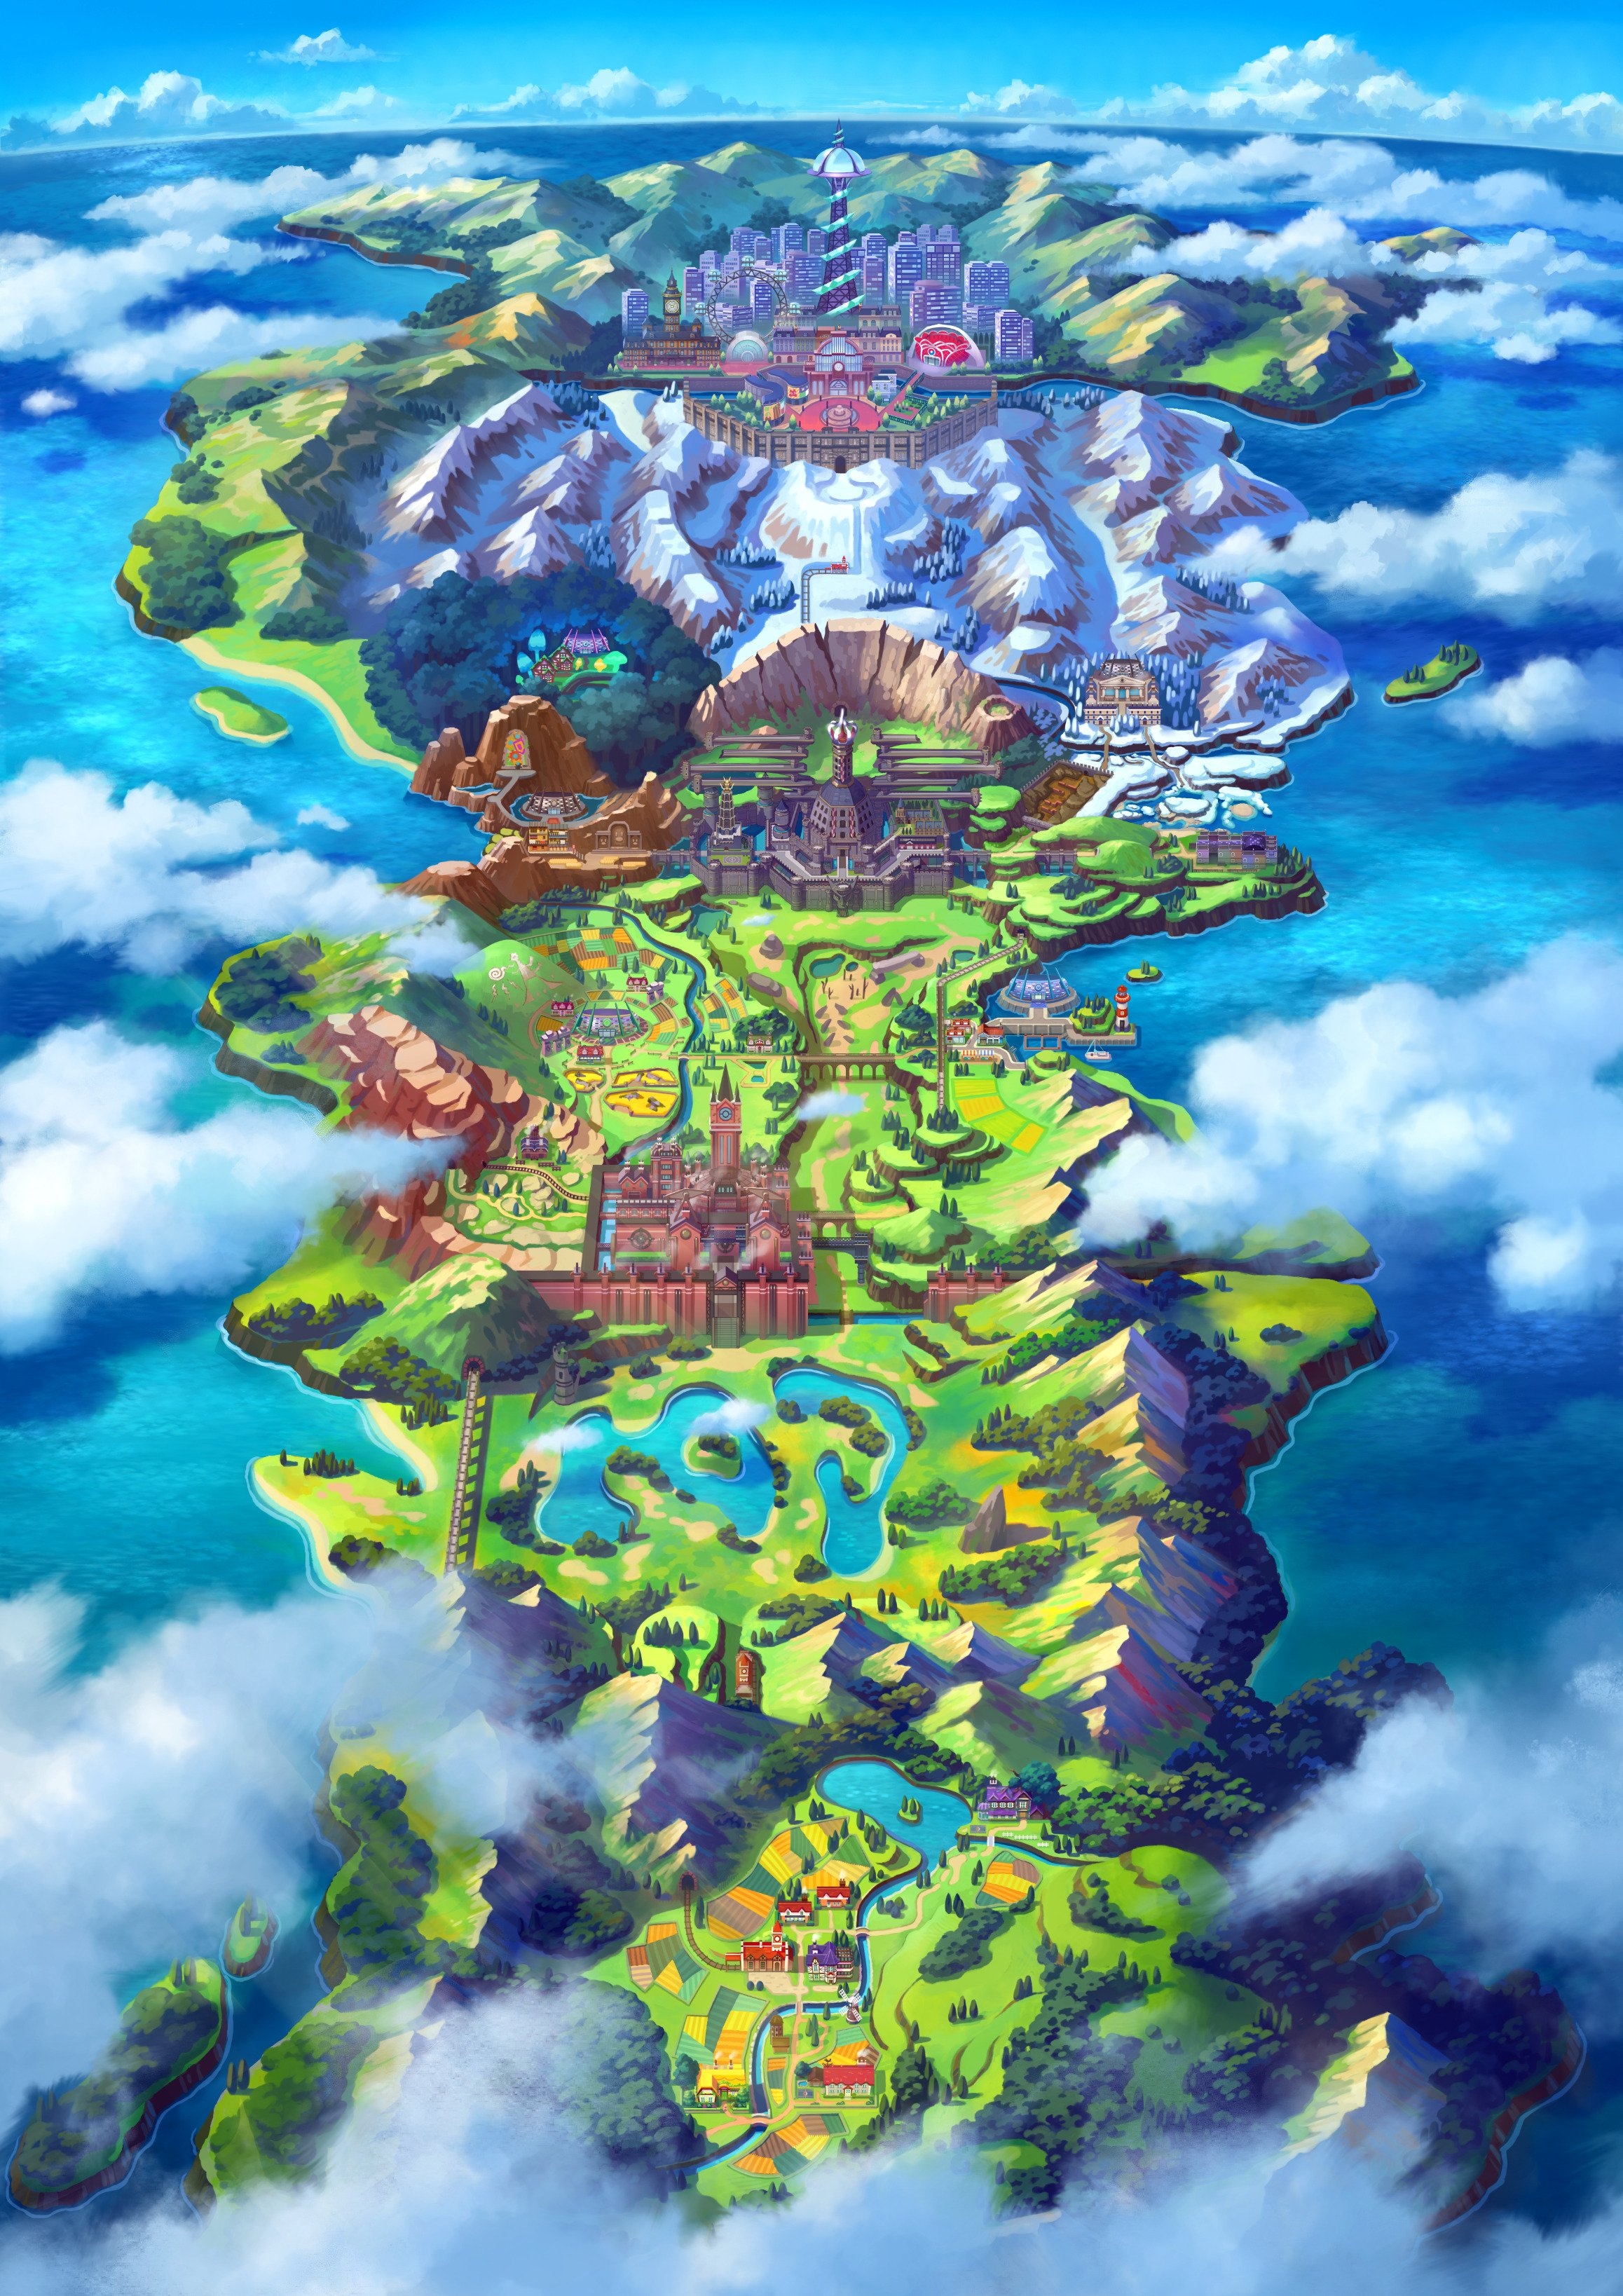 Galar, the Region of Pokémon Sword/Shield